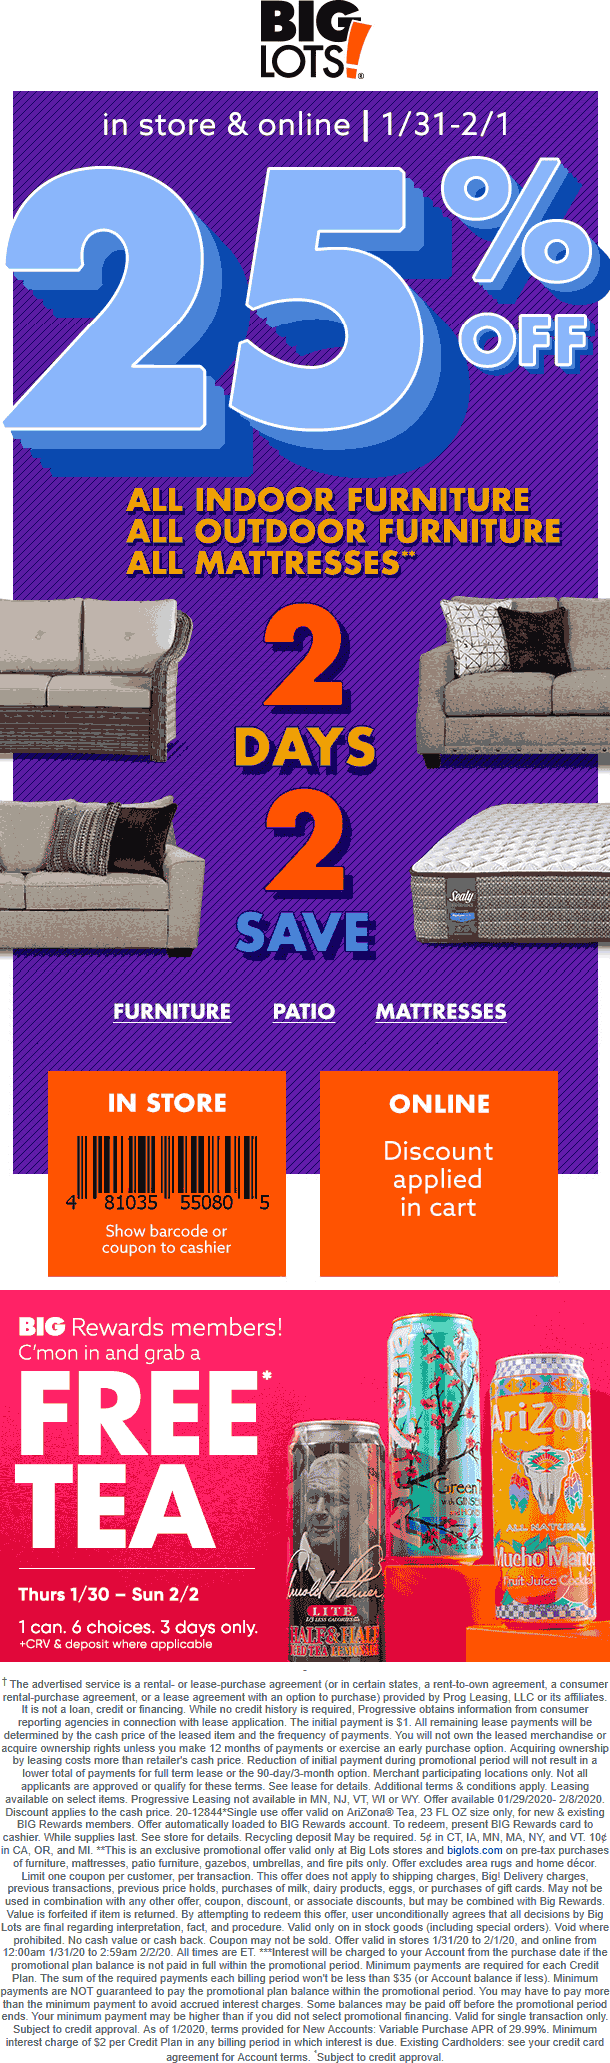 Big Lots coupons & promo code for [February 2020]